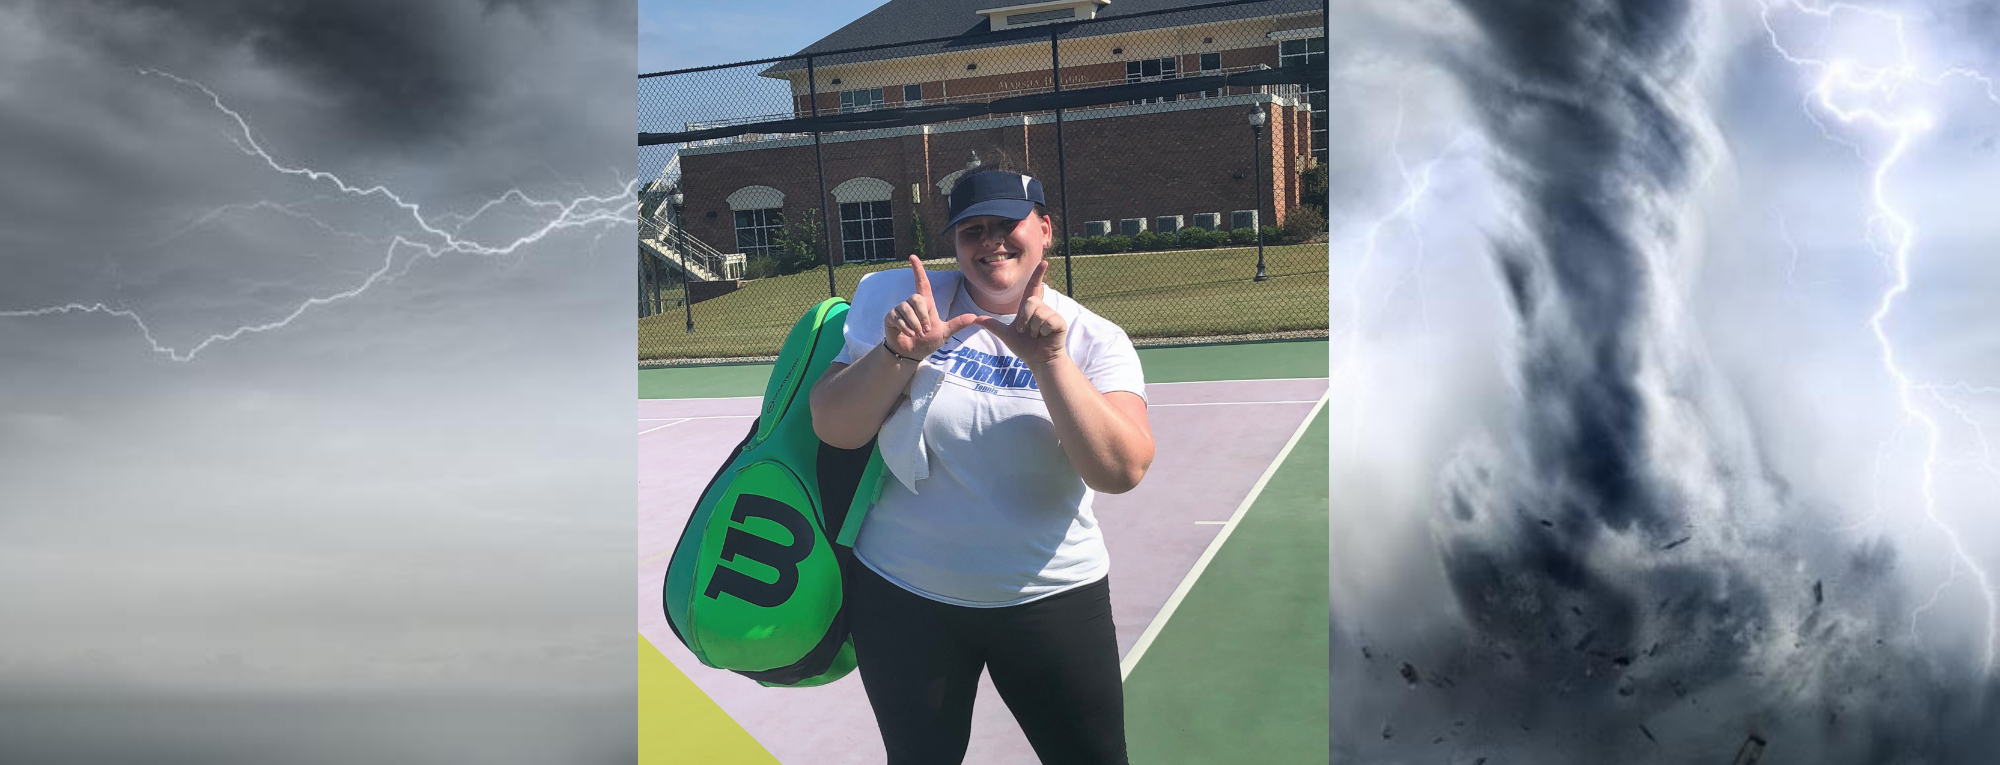 Flannery Picks Up Singles & Doubles Wins at NCAA DII Southern Wesleyan